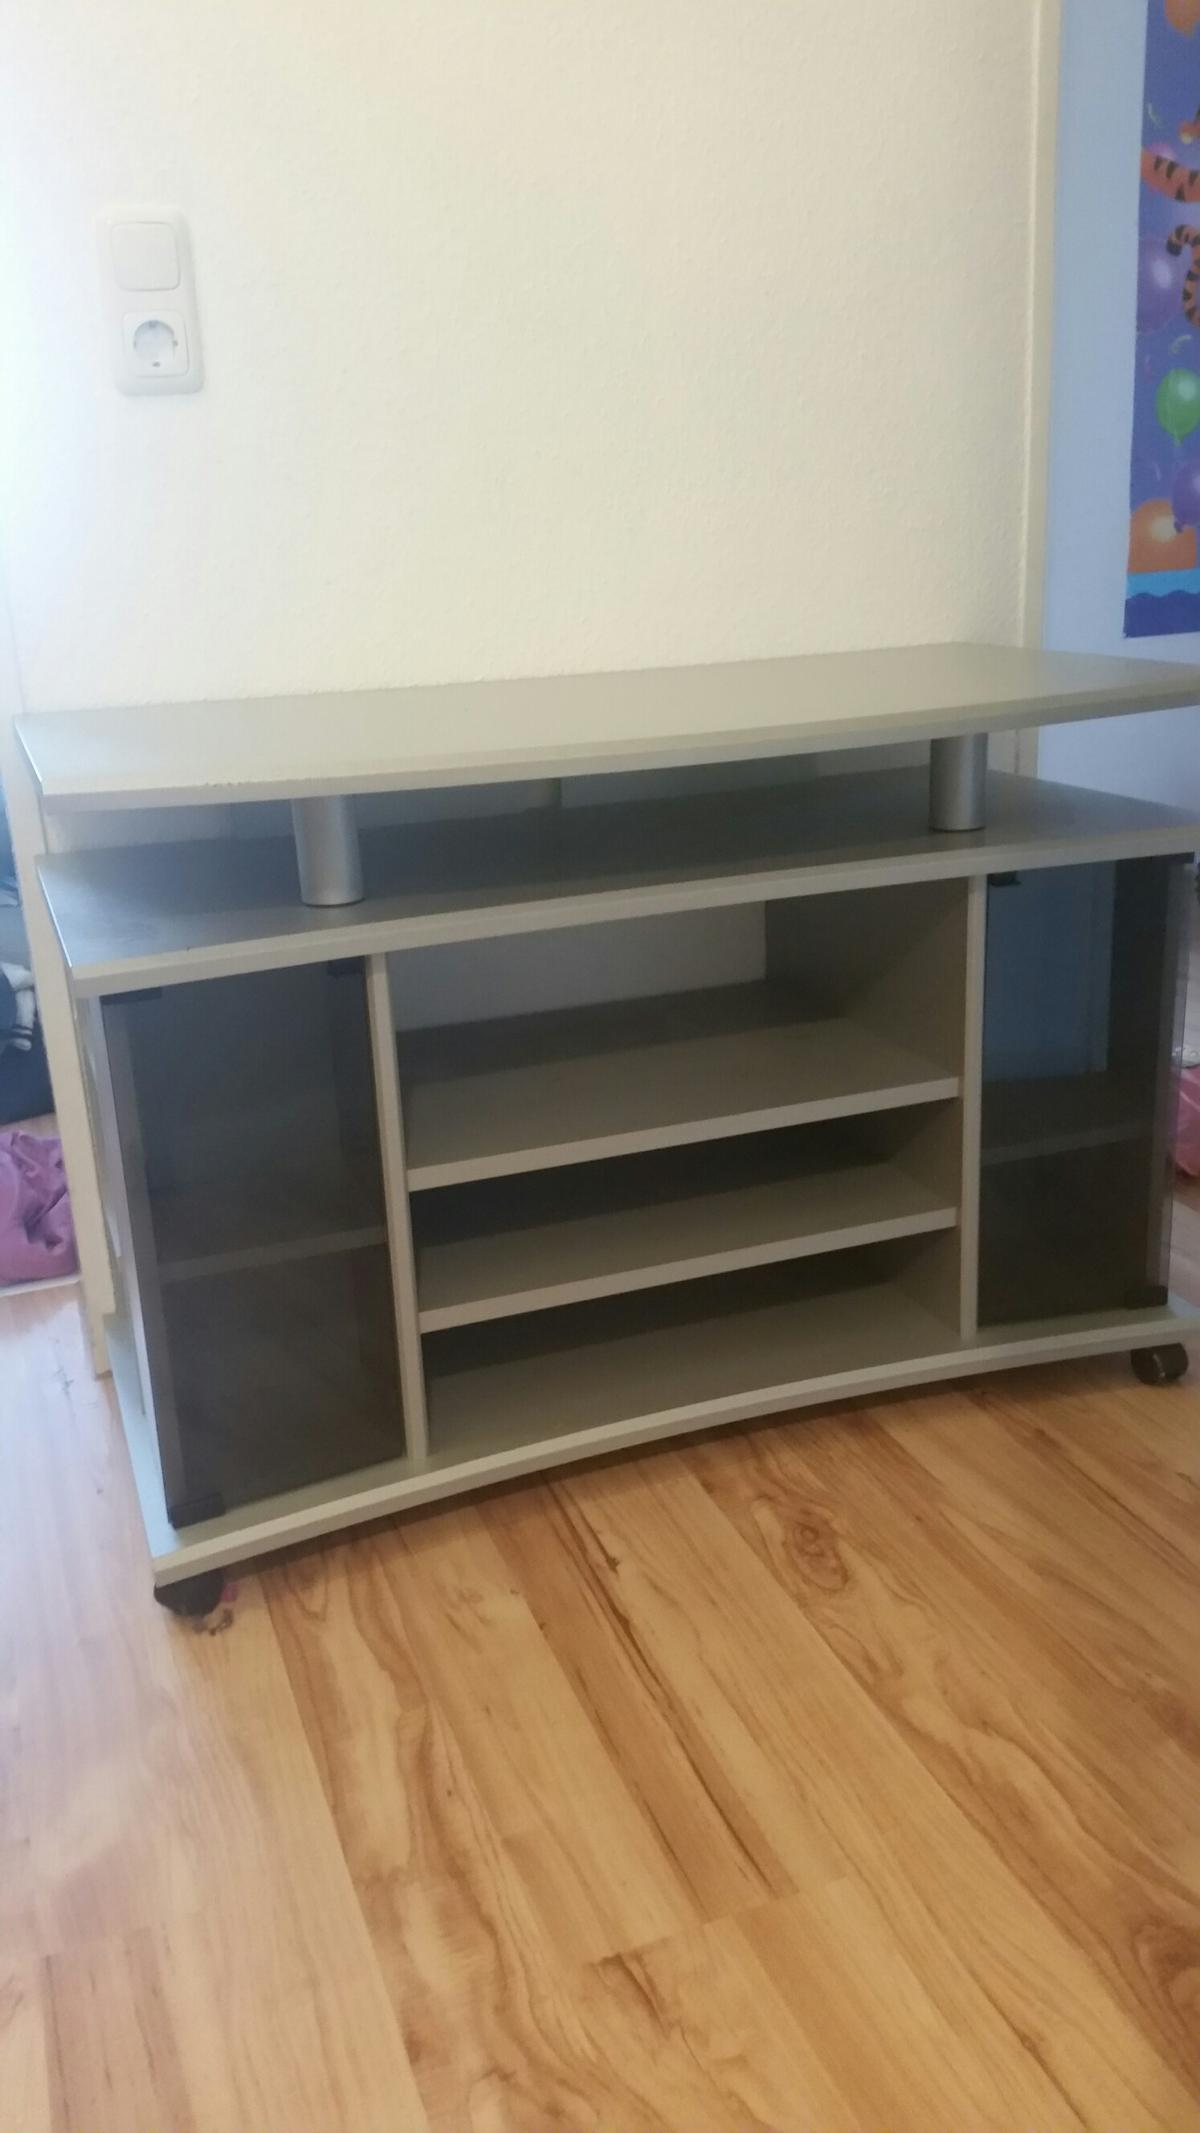 Tv Schrank In 57610 Altenkirchen Westerwald For 30 00 For Sale